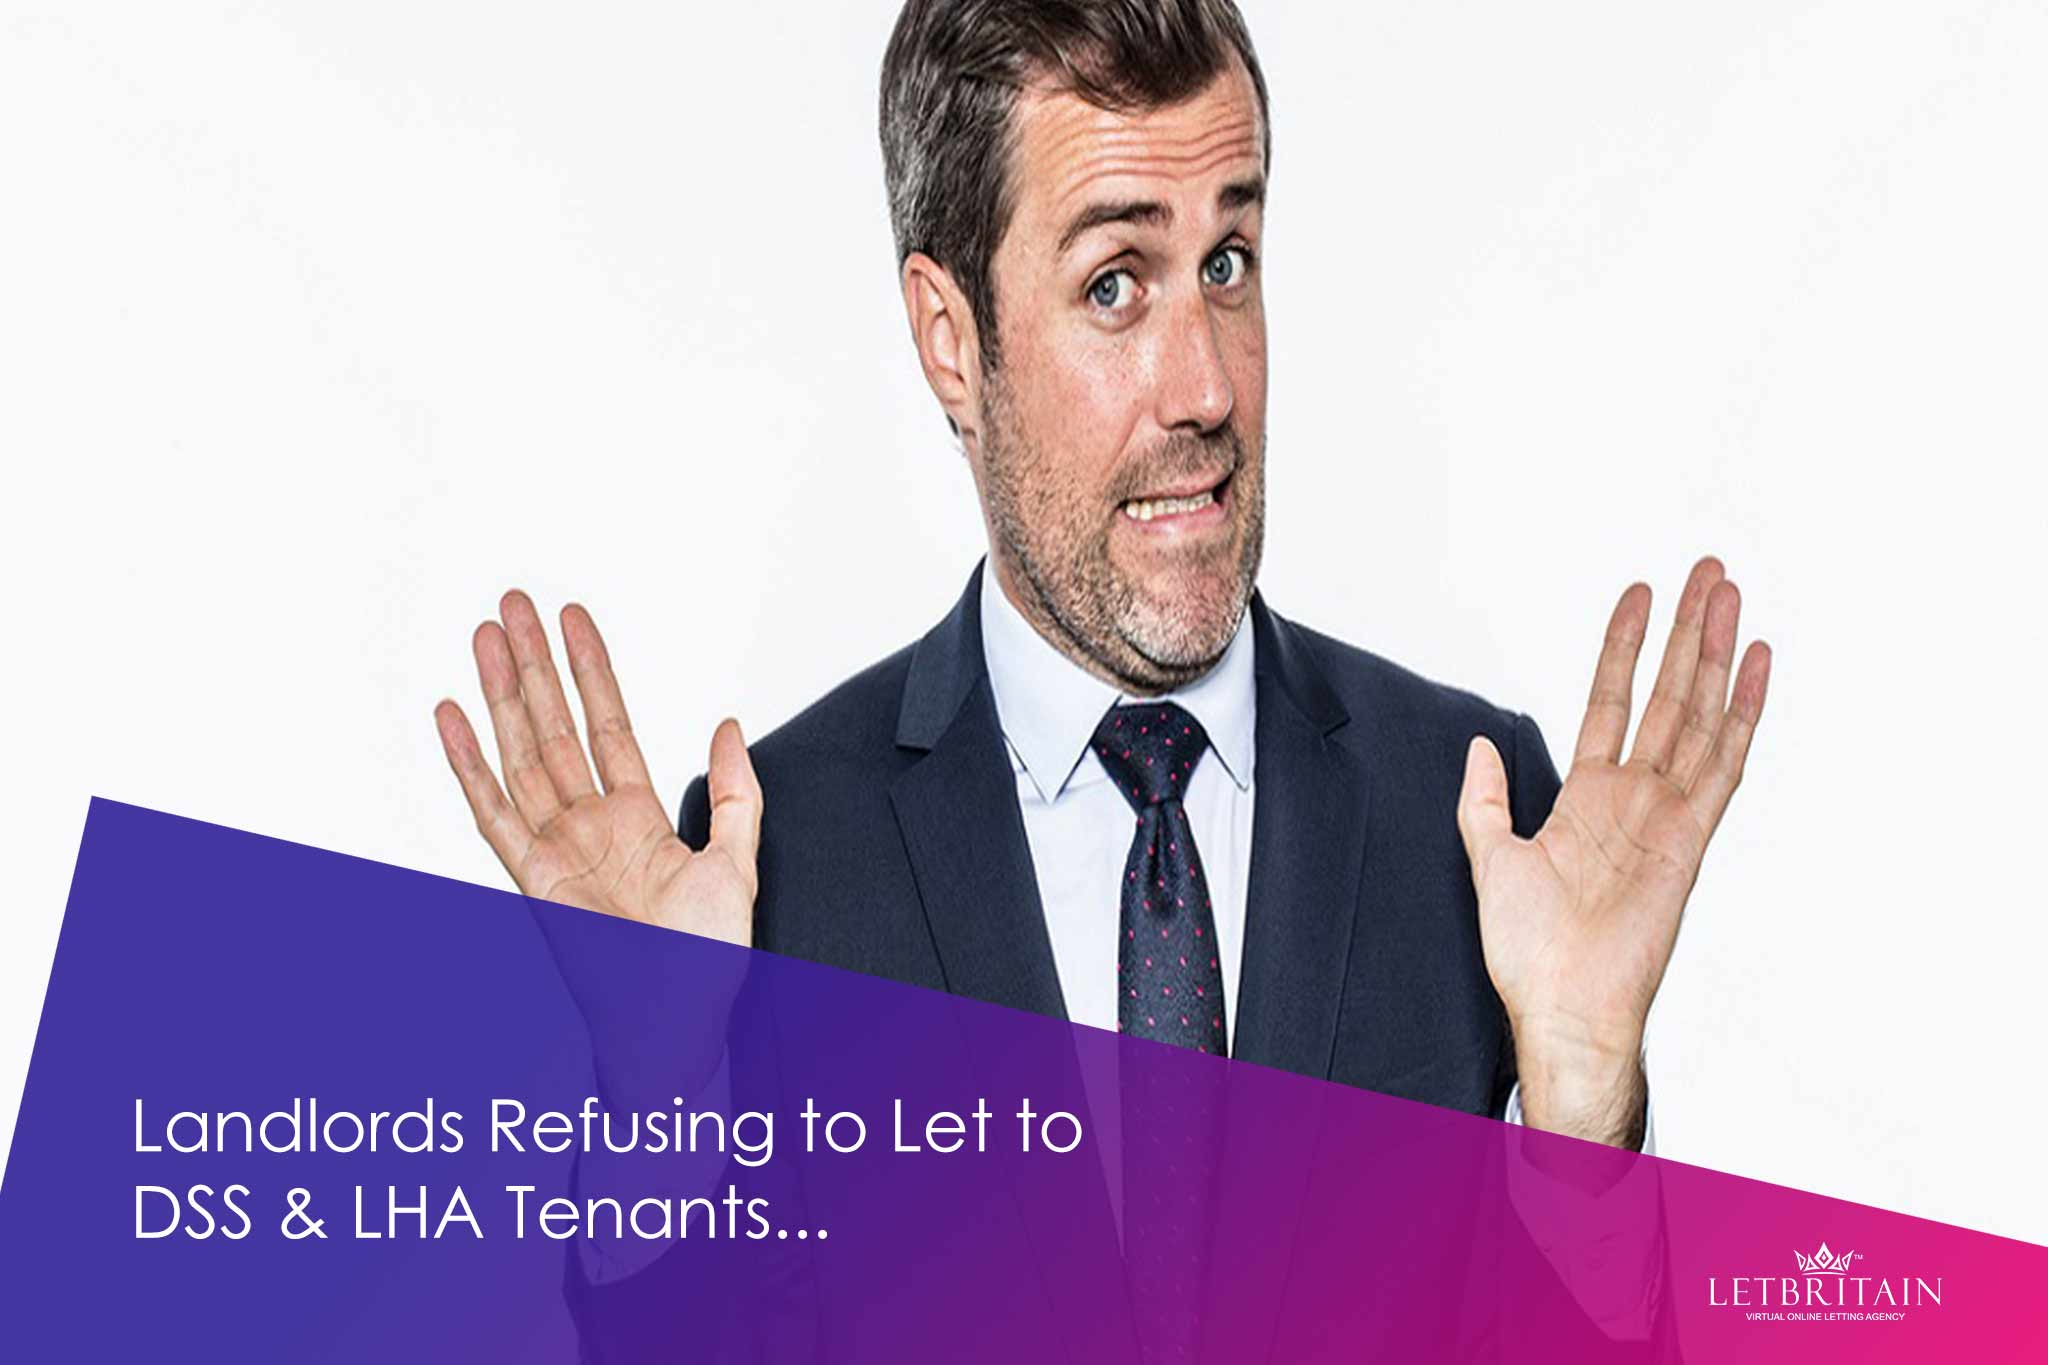 Landlords refusing to let to DSS and LHA tenants could.....